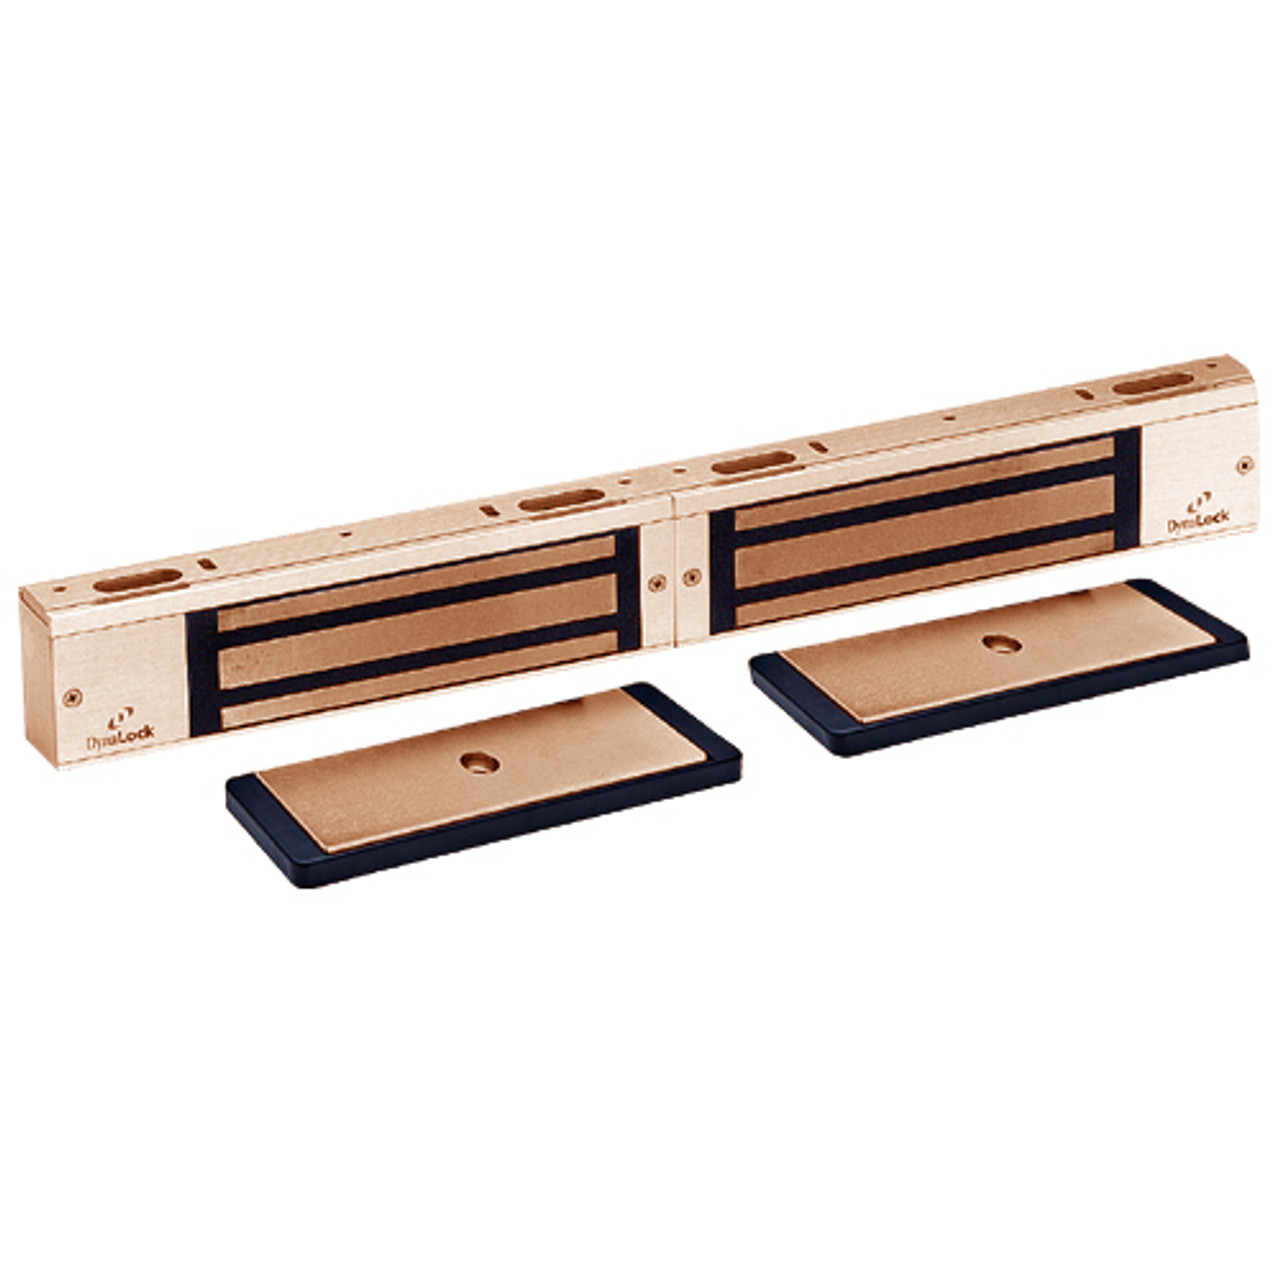 3002-US10 DynaLock 3000 Series 1500 LBs Double Electromagnetic Lock for Outswing Door in Satin Bronze